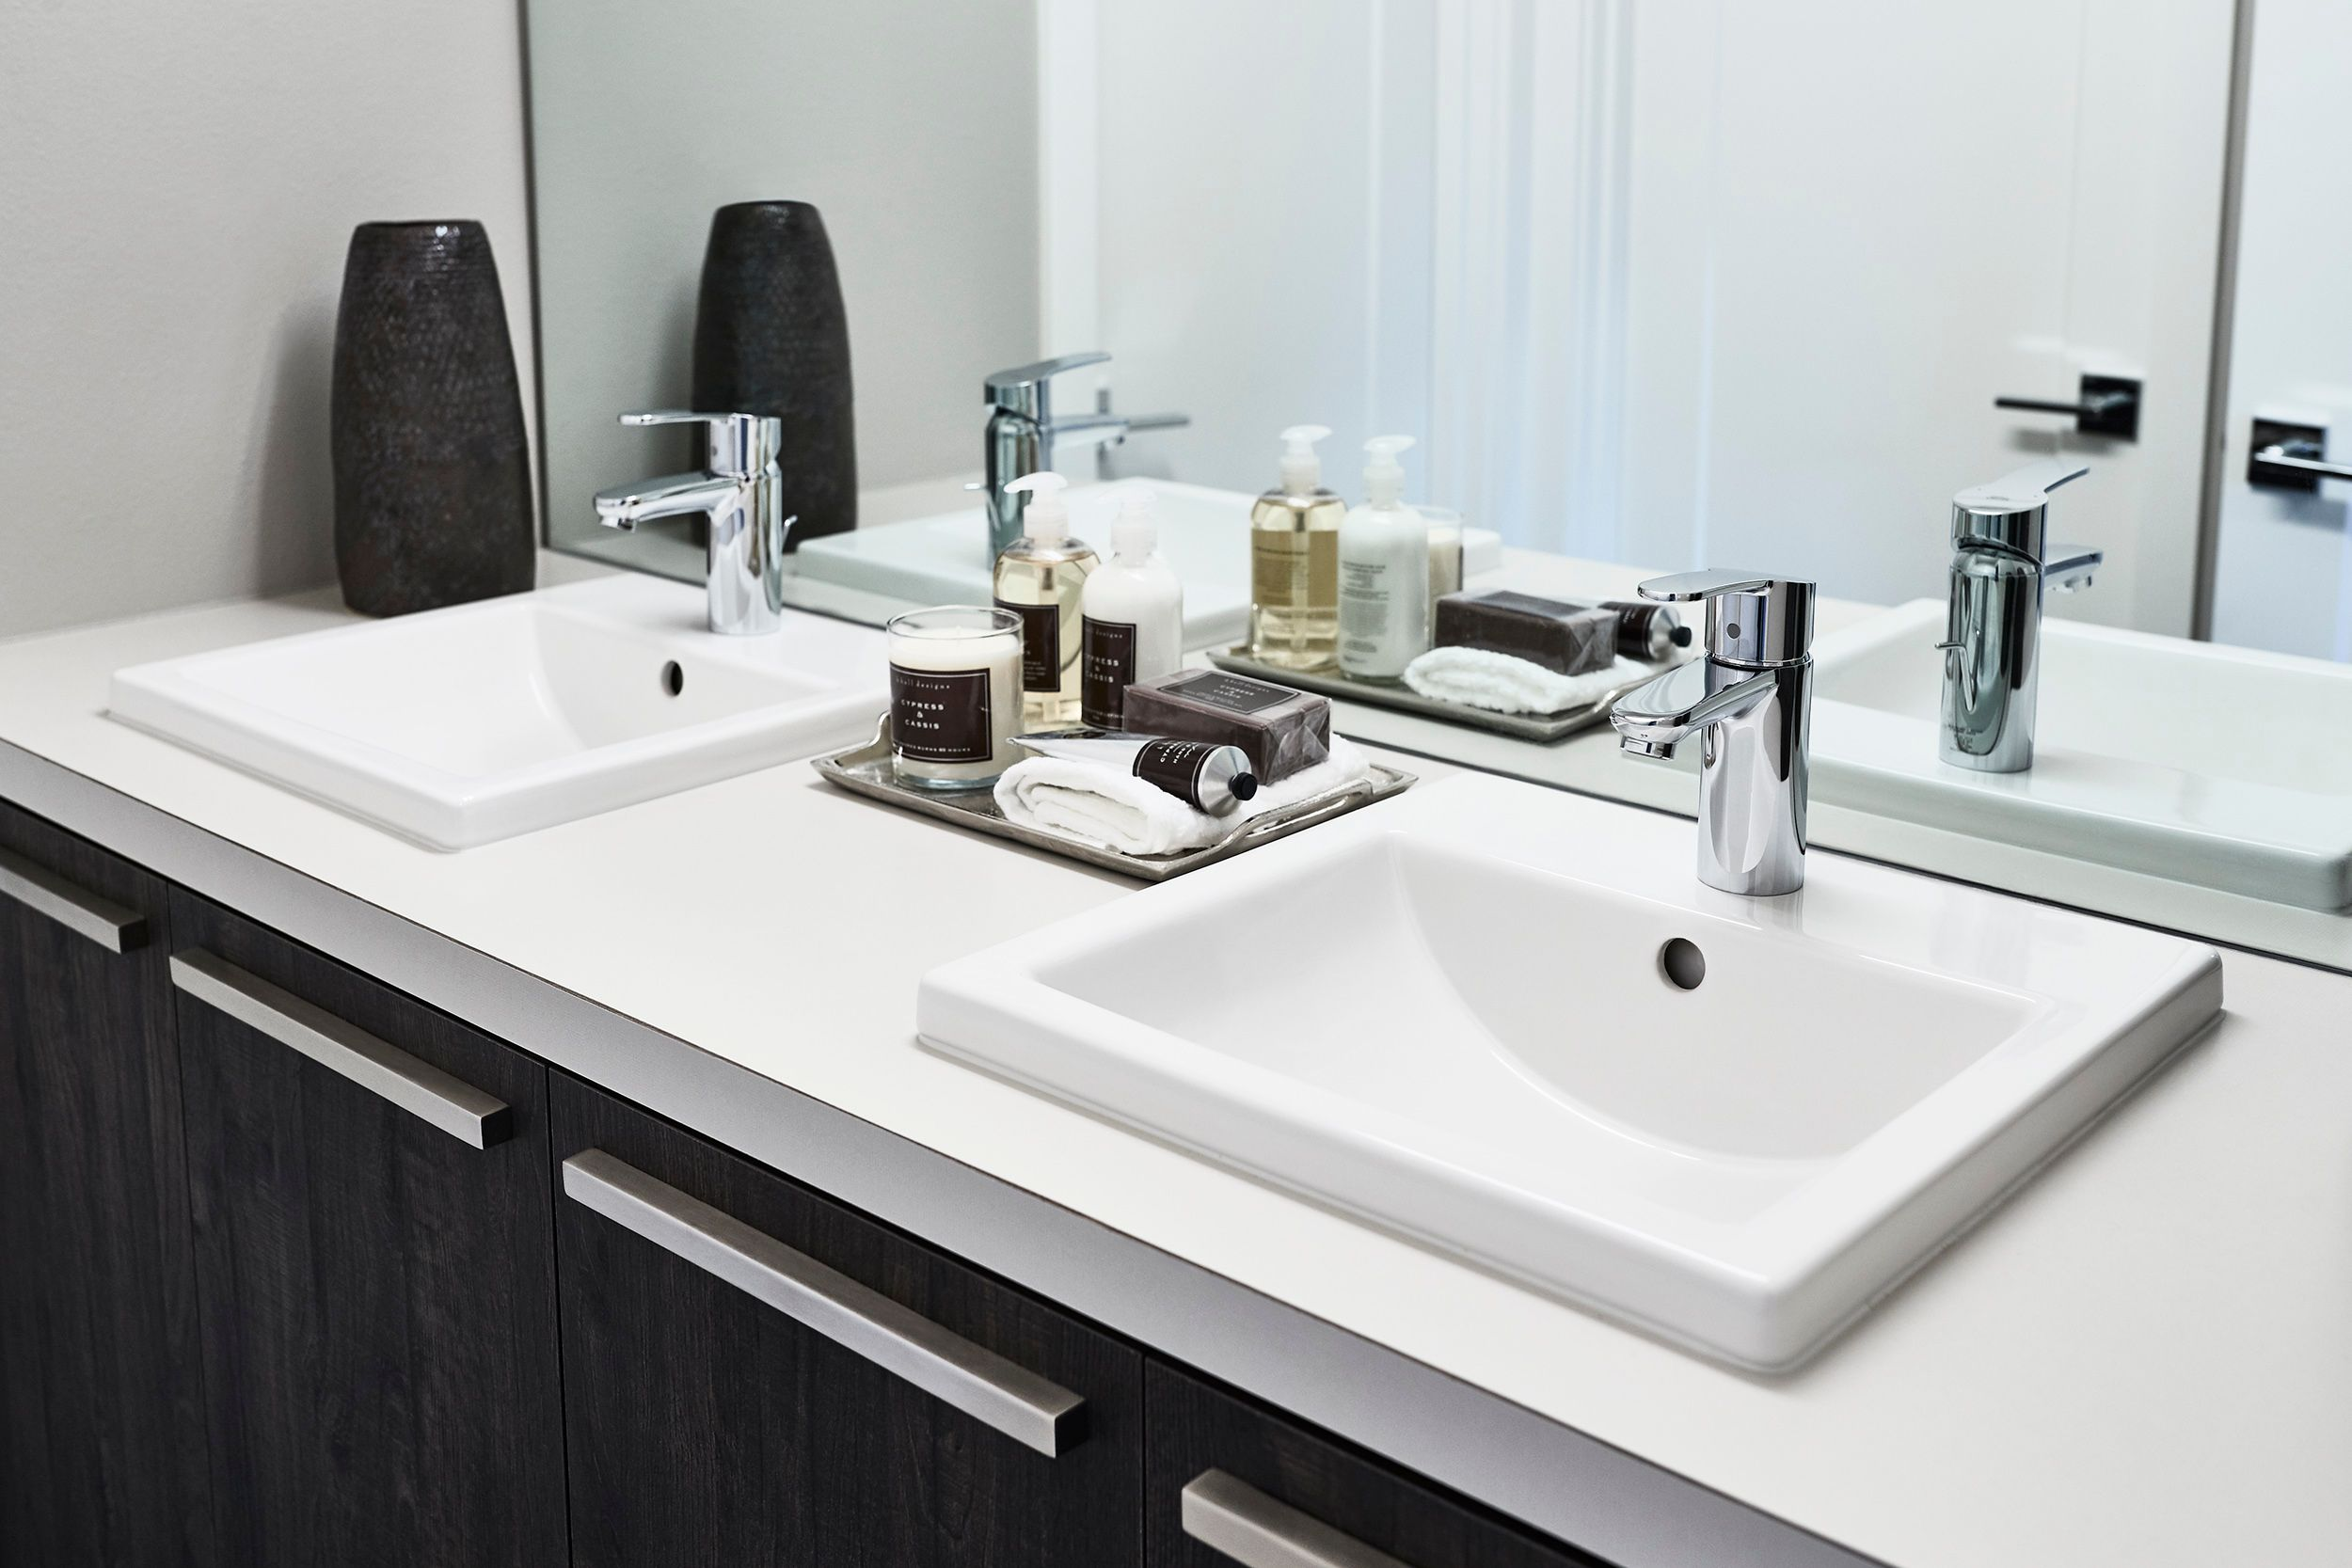 Bathroom featured in the Camden By MainVue Homes in Tacoma, WA